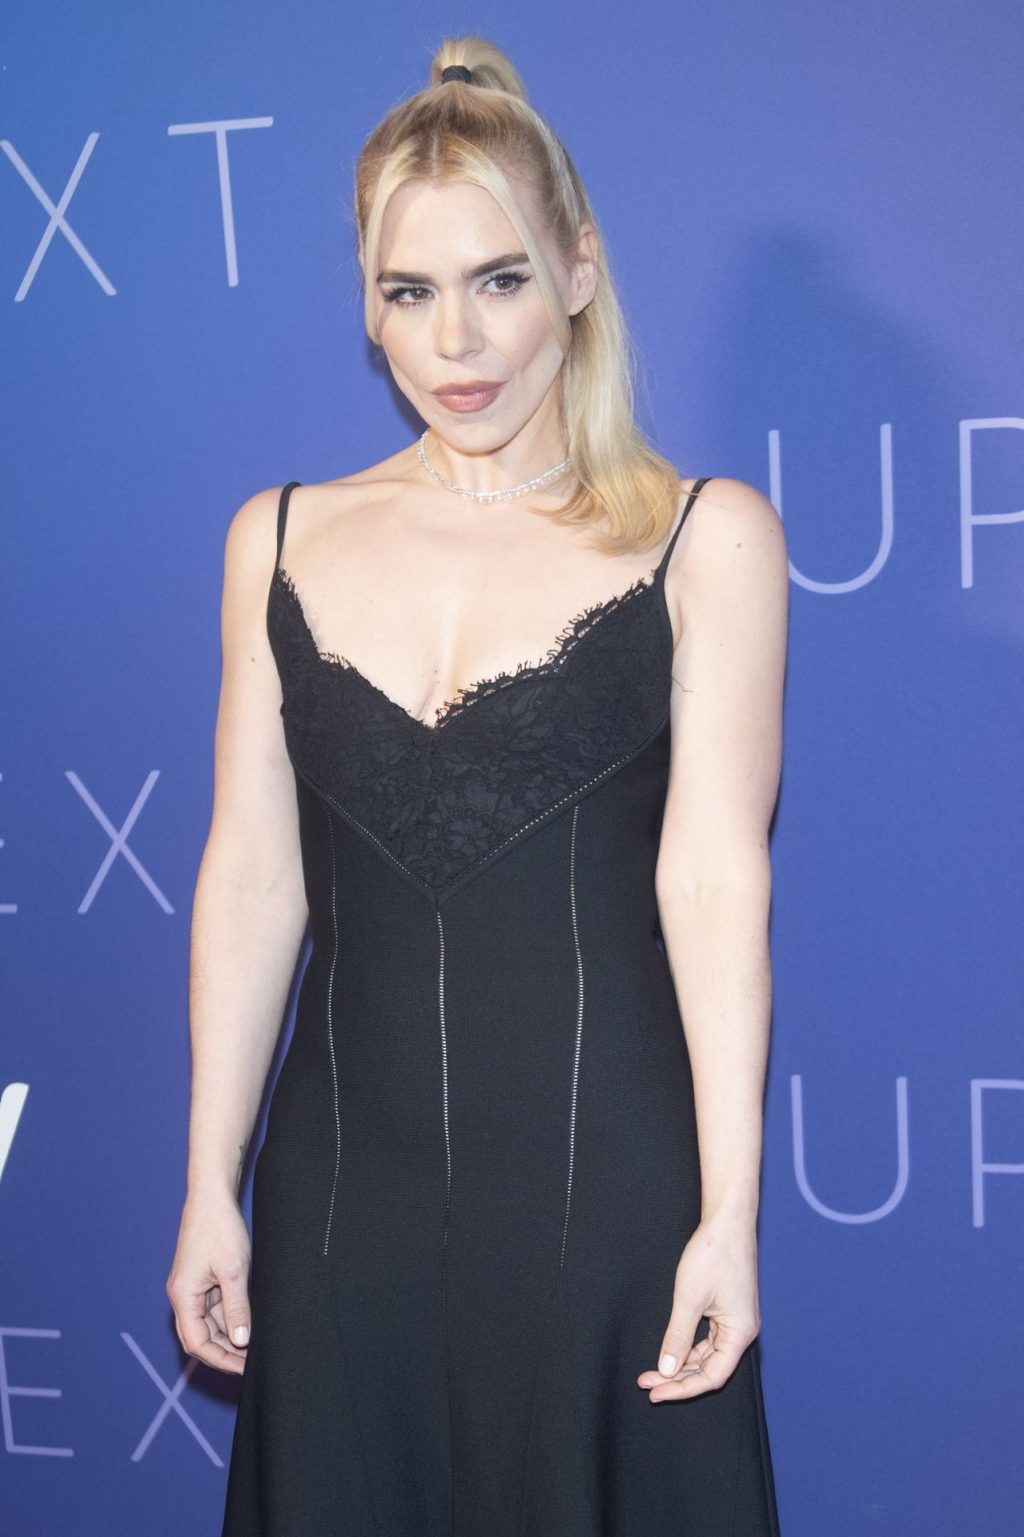 Billie Piper Sexy The Fappening Blog 44 1024x1537 - Billie Piper Smiles at the Sky Up Next Event (67 Photos)